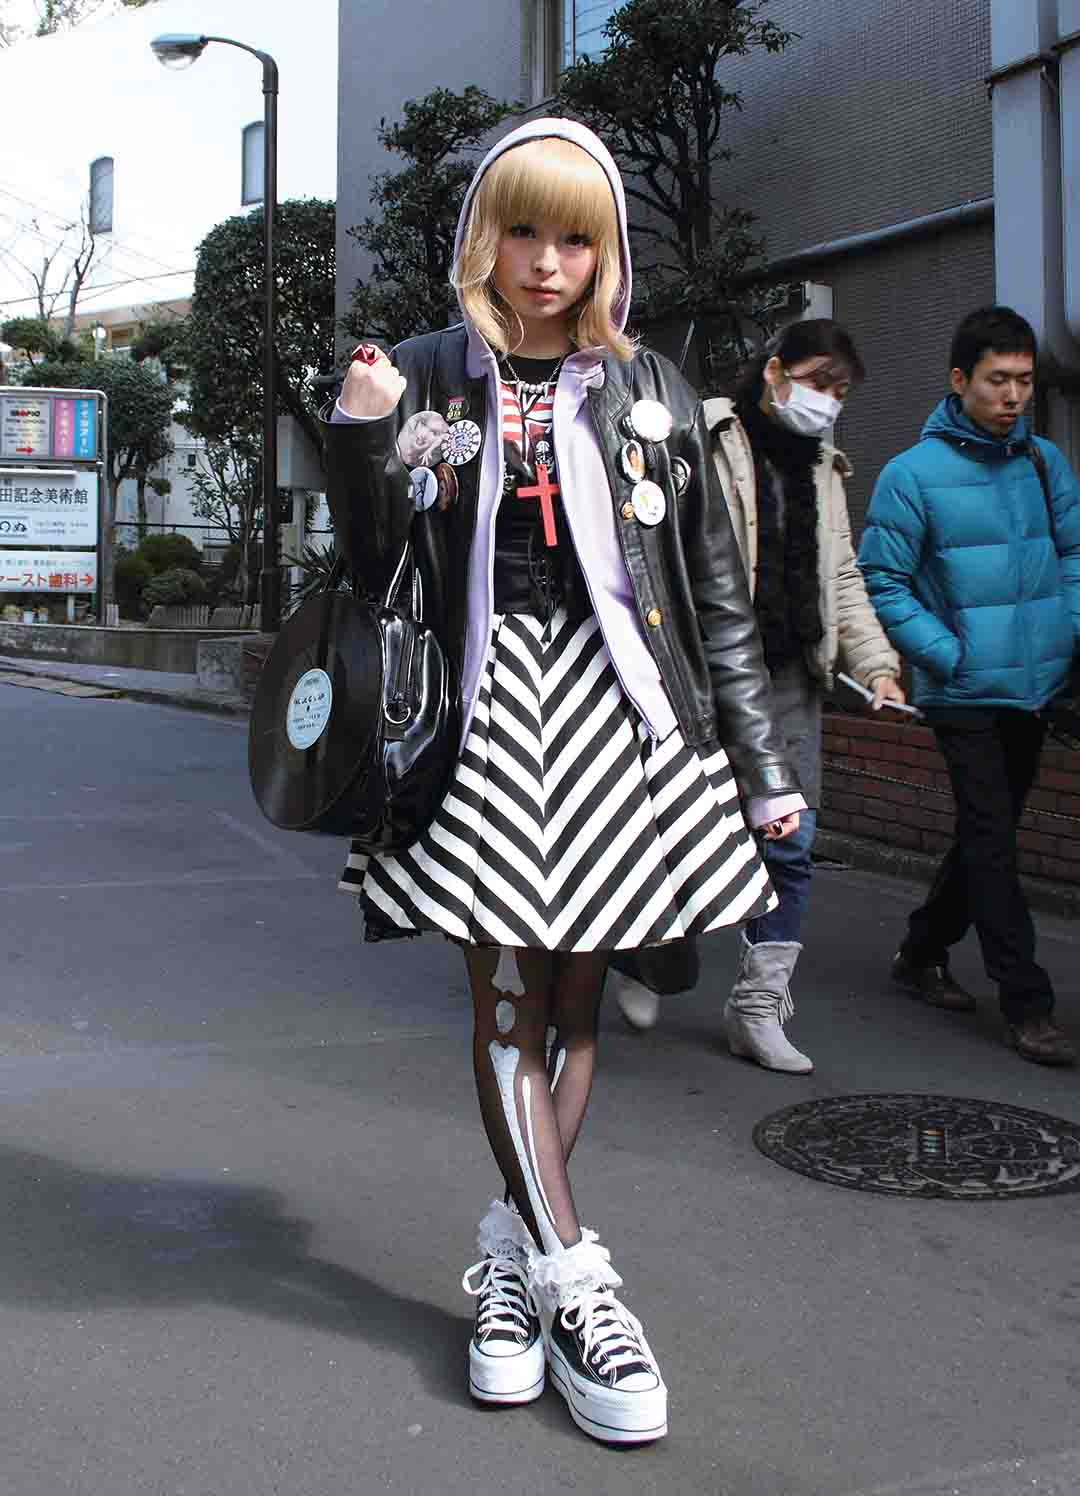 Japanese Girls Street Fashion